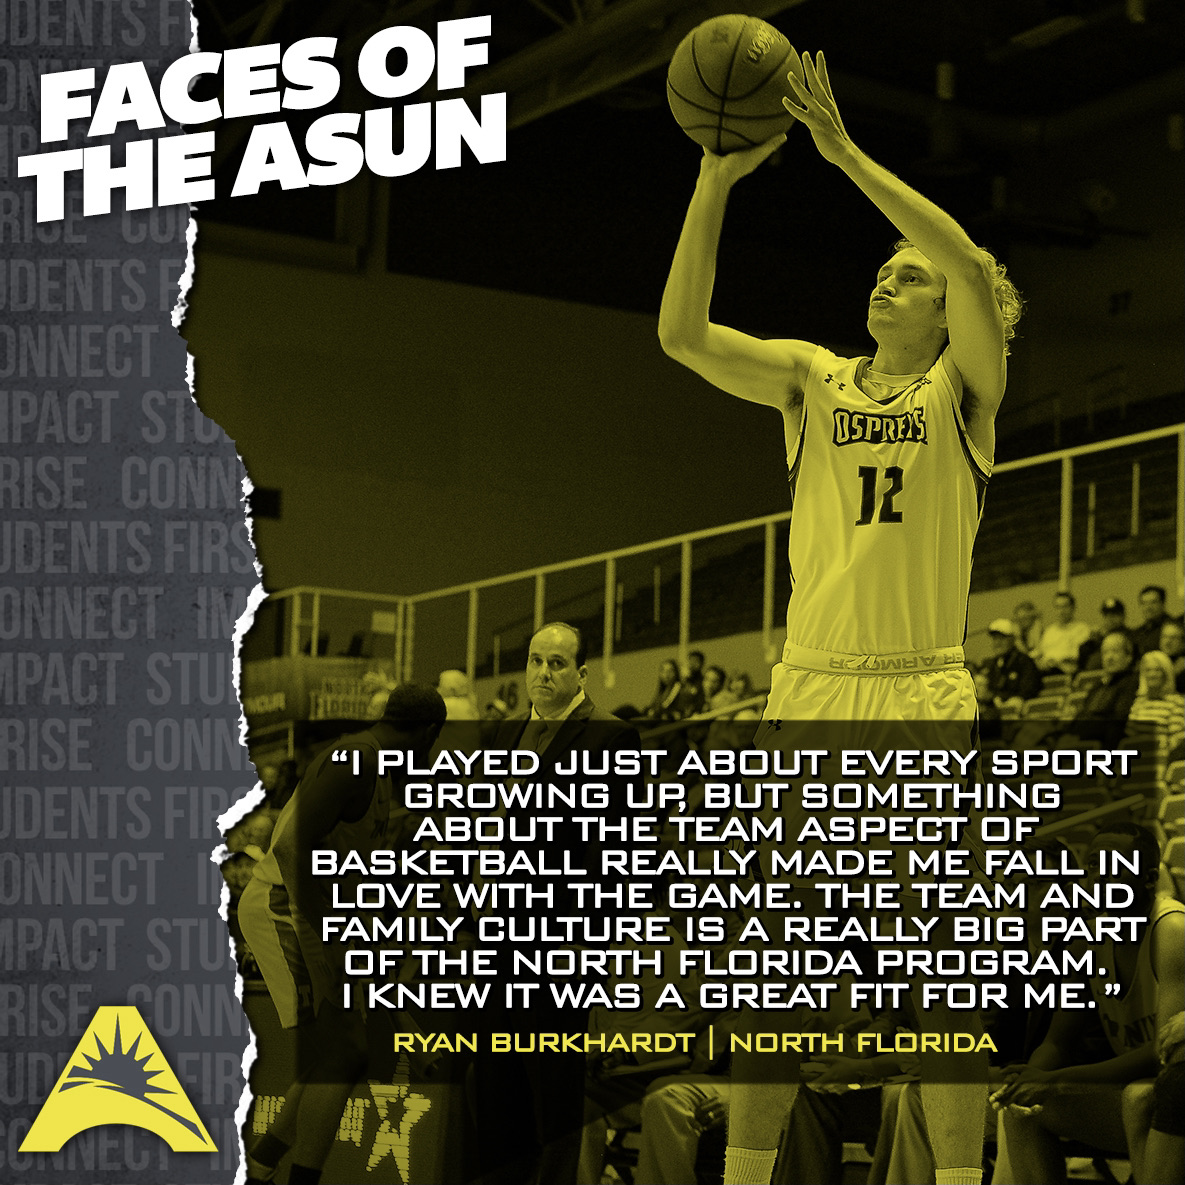 This weeks #FacesOfTheASUN Ryan Burkhardt once ate 54 chicken nuggets in one sitting... He started playing basketball in his driveway as a little kid, and now hes a senior for @OspreyMBB 🏀🤙 #ASUNBuilt | #SWOOPLife